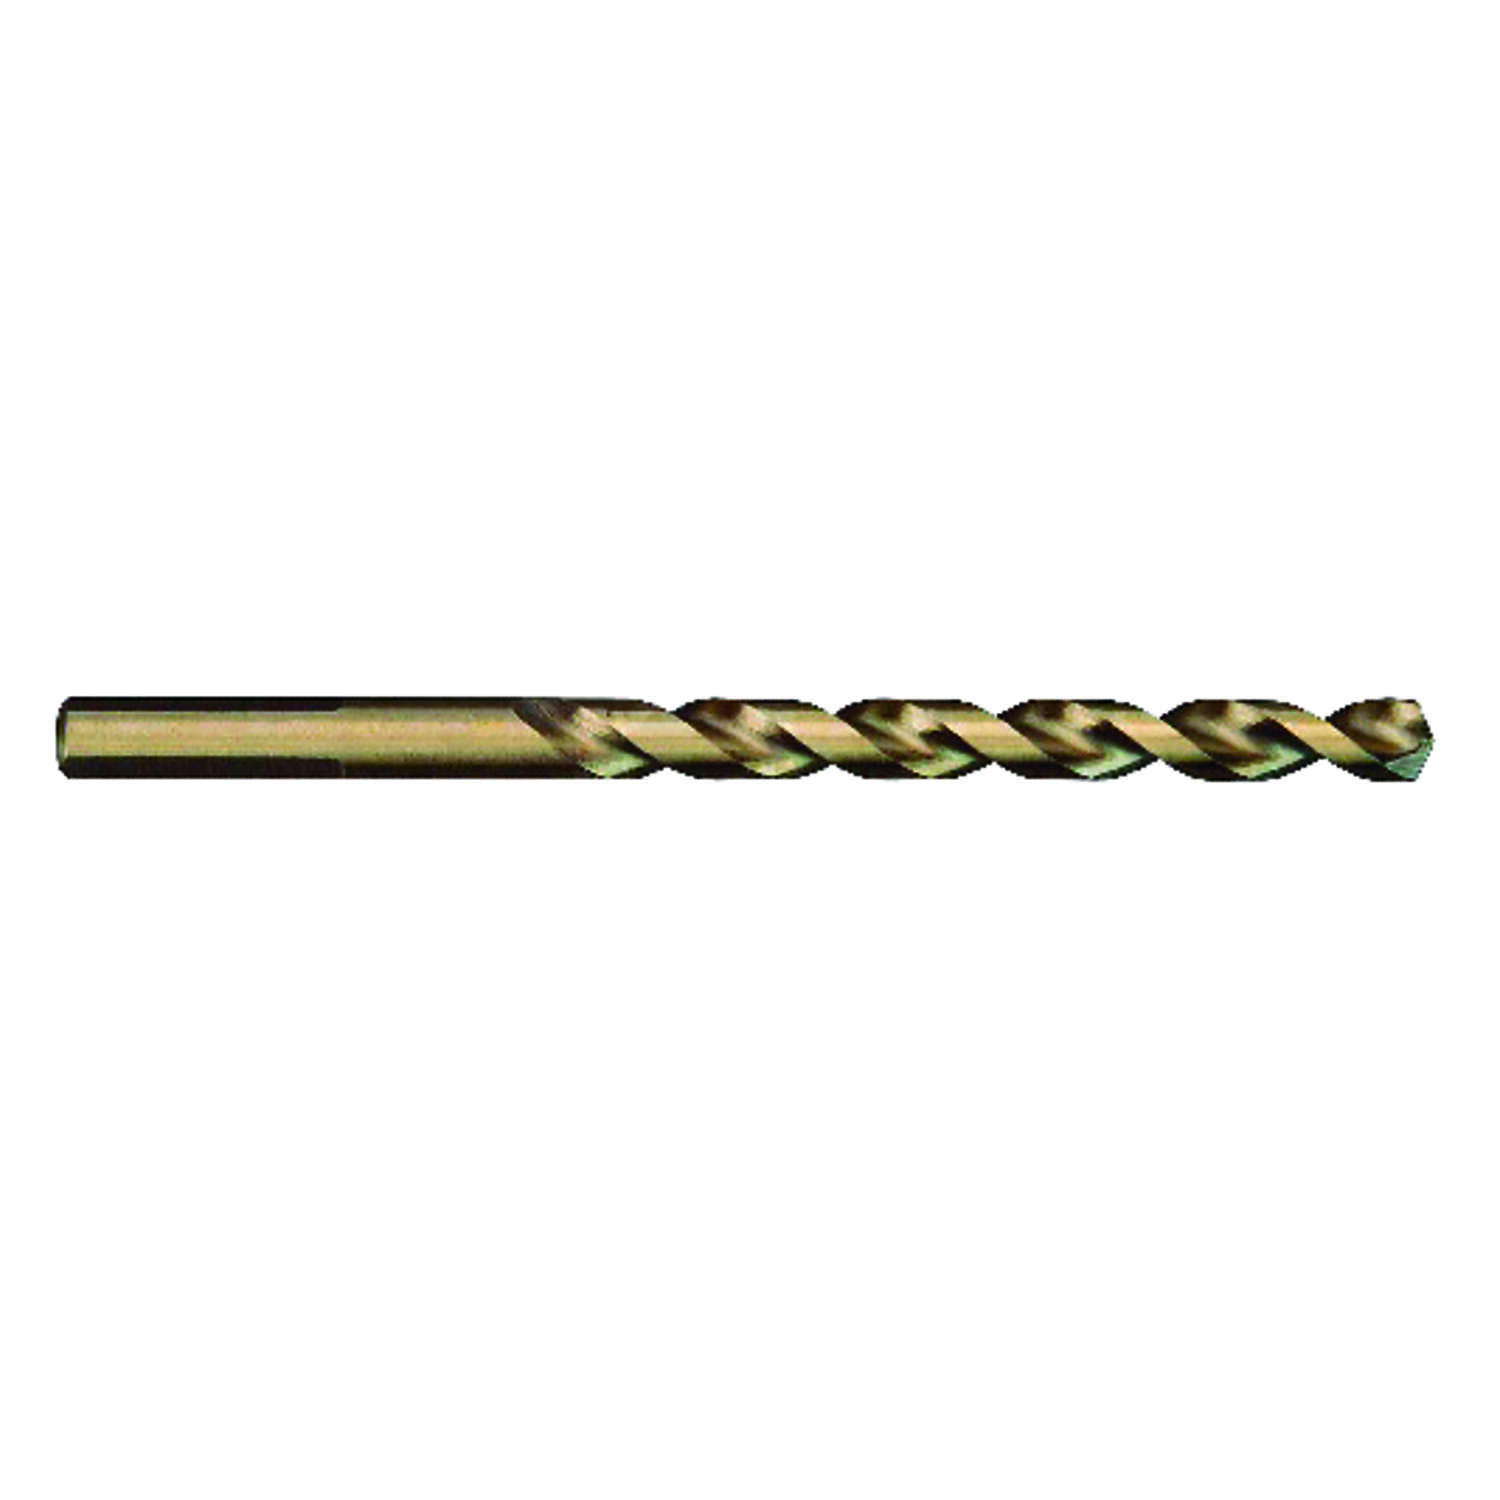 Milwaukee  RED HELIX  3/32 in.  x 2-5/8 in. L Cobalt Steel  THUNDERBOLT  Drill Bit  1 pc.